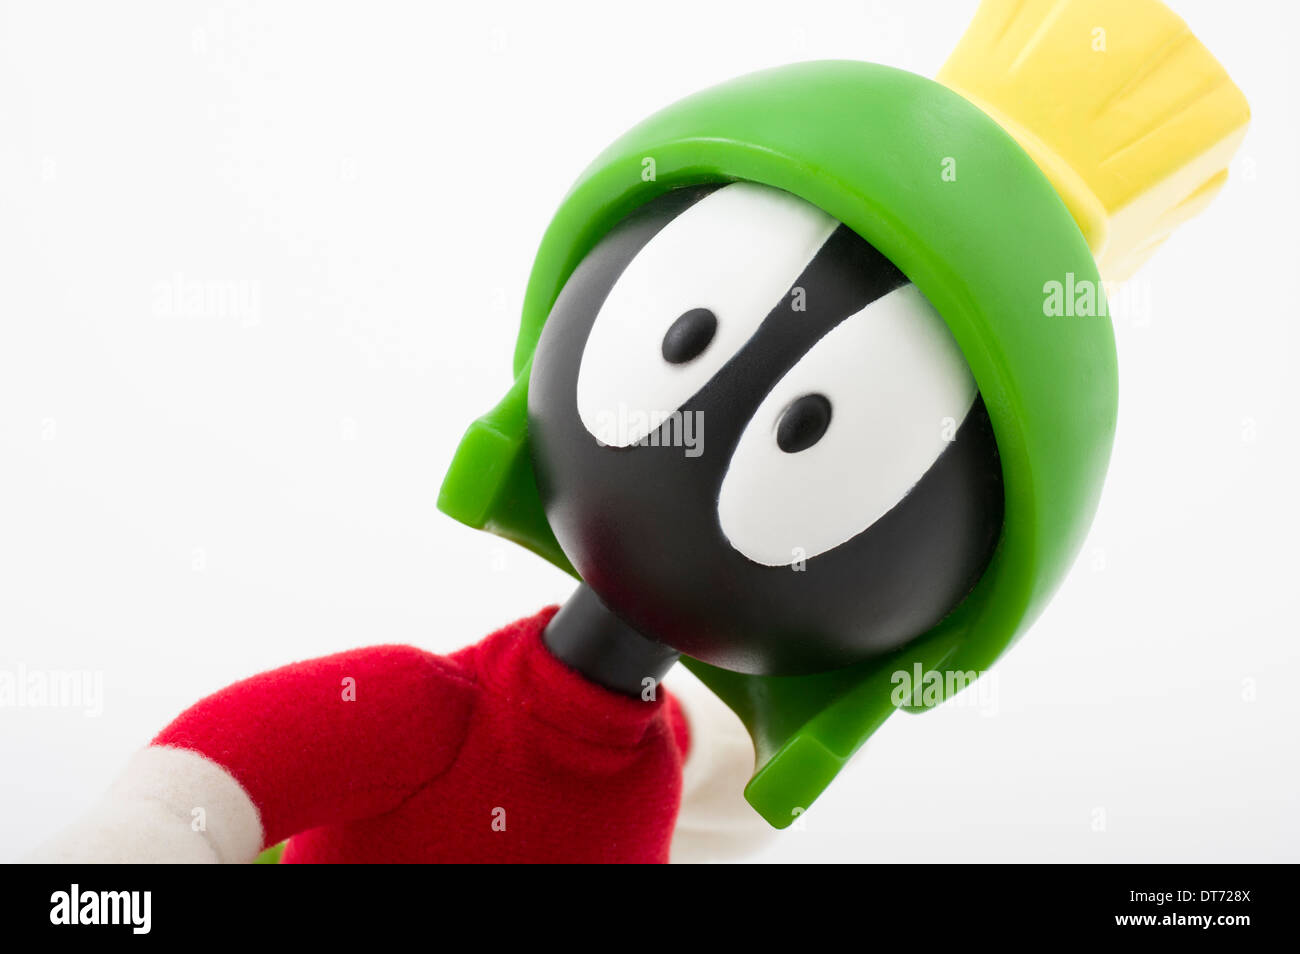 Marvin The Martian a Looney Tunes cartoon character children's toy - Stock Image